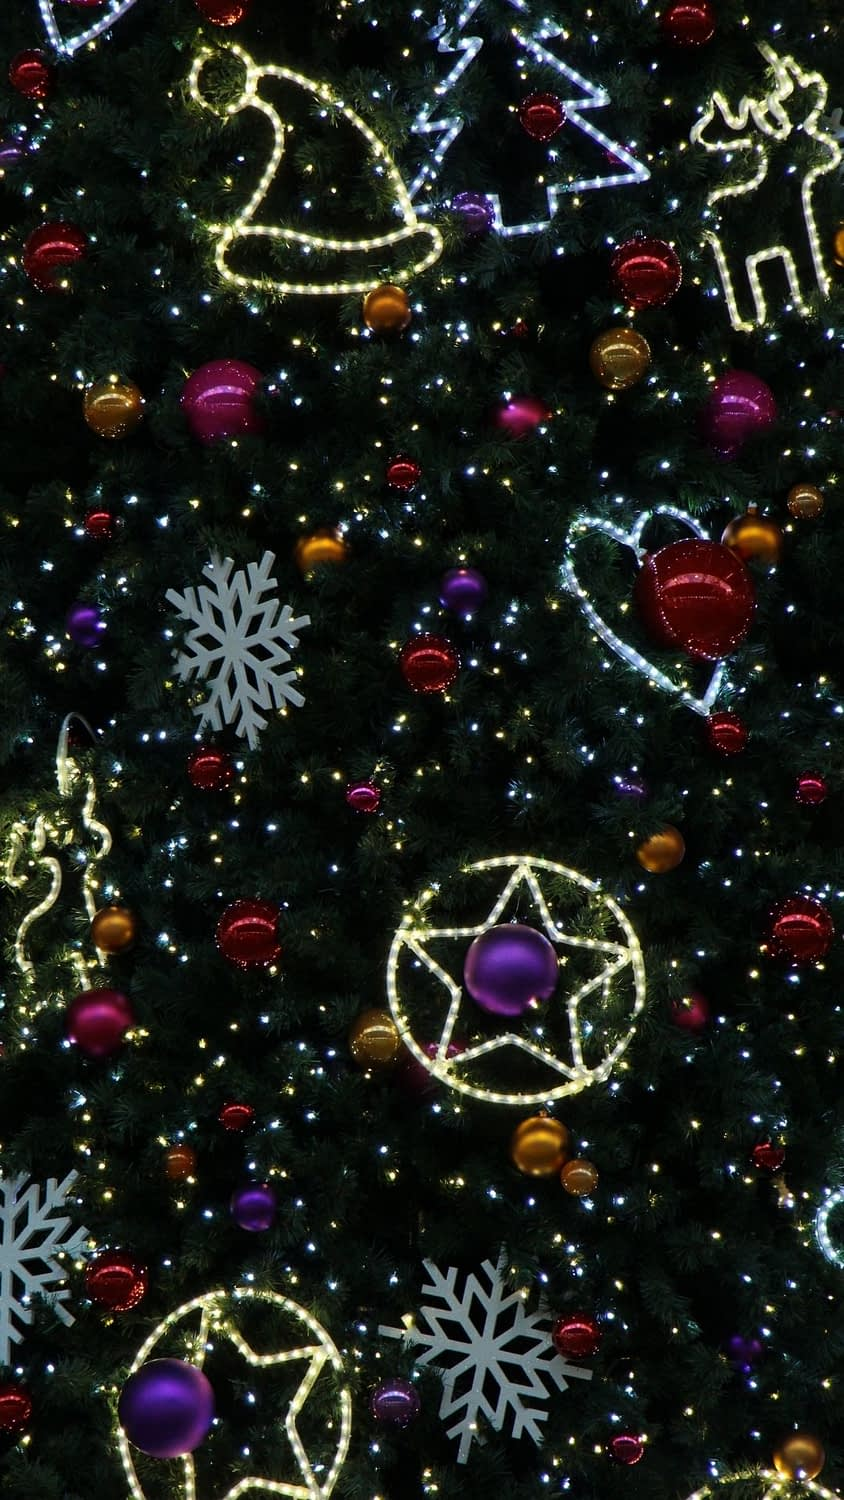 Cute Christmas iphone wallpaper with ornaments and stars